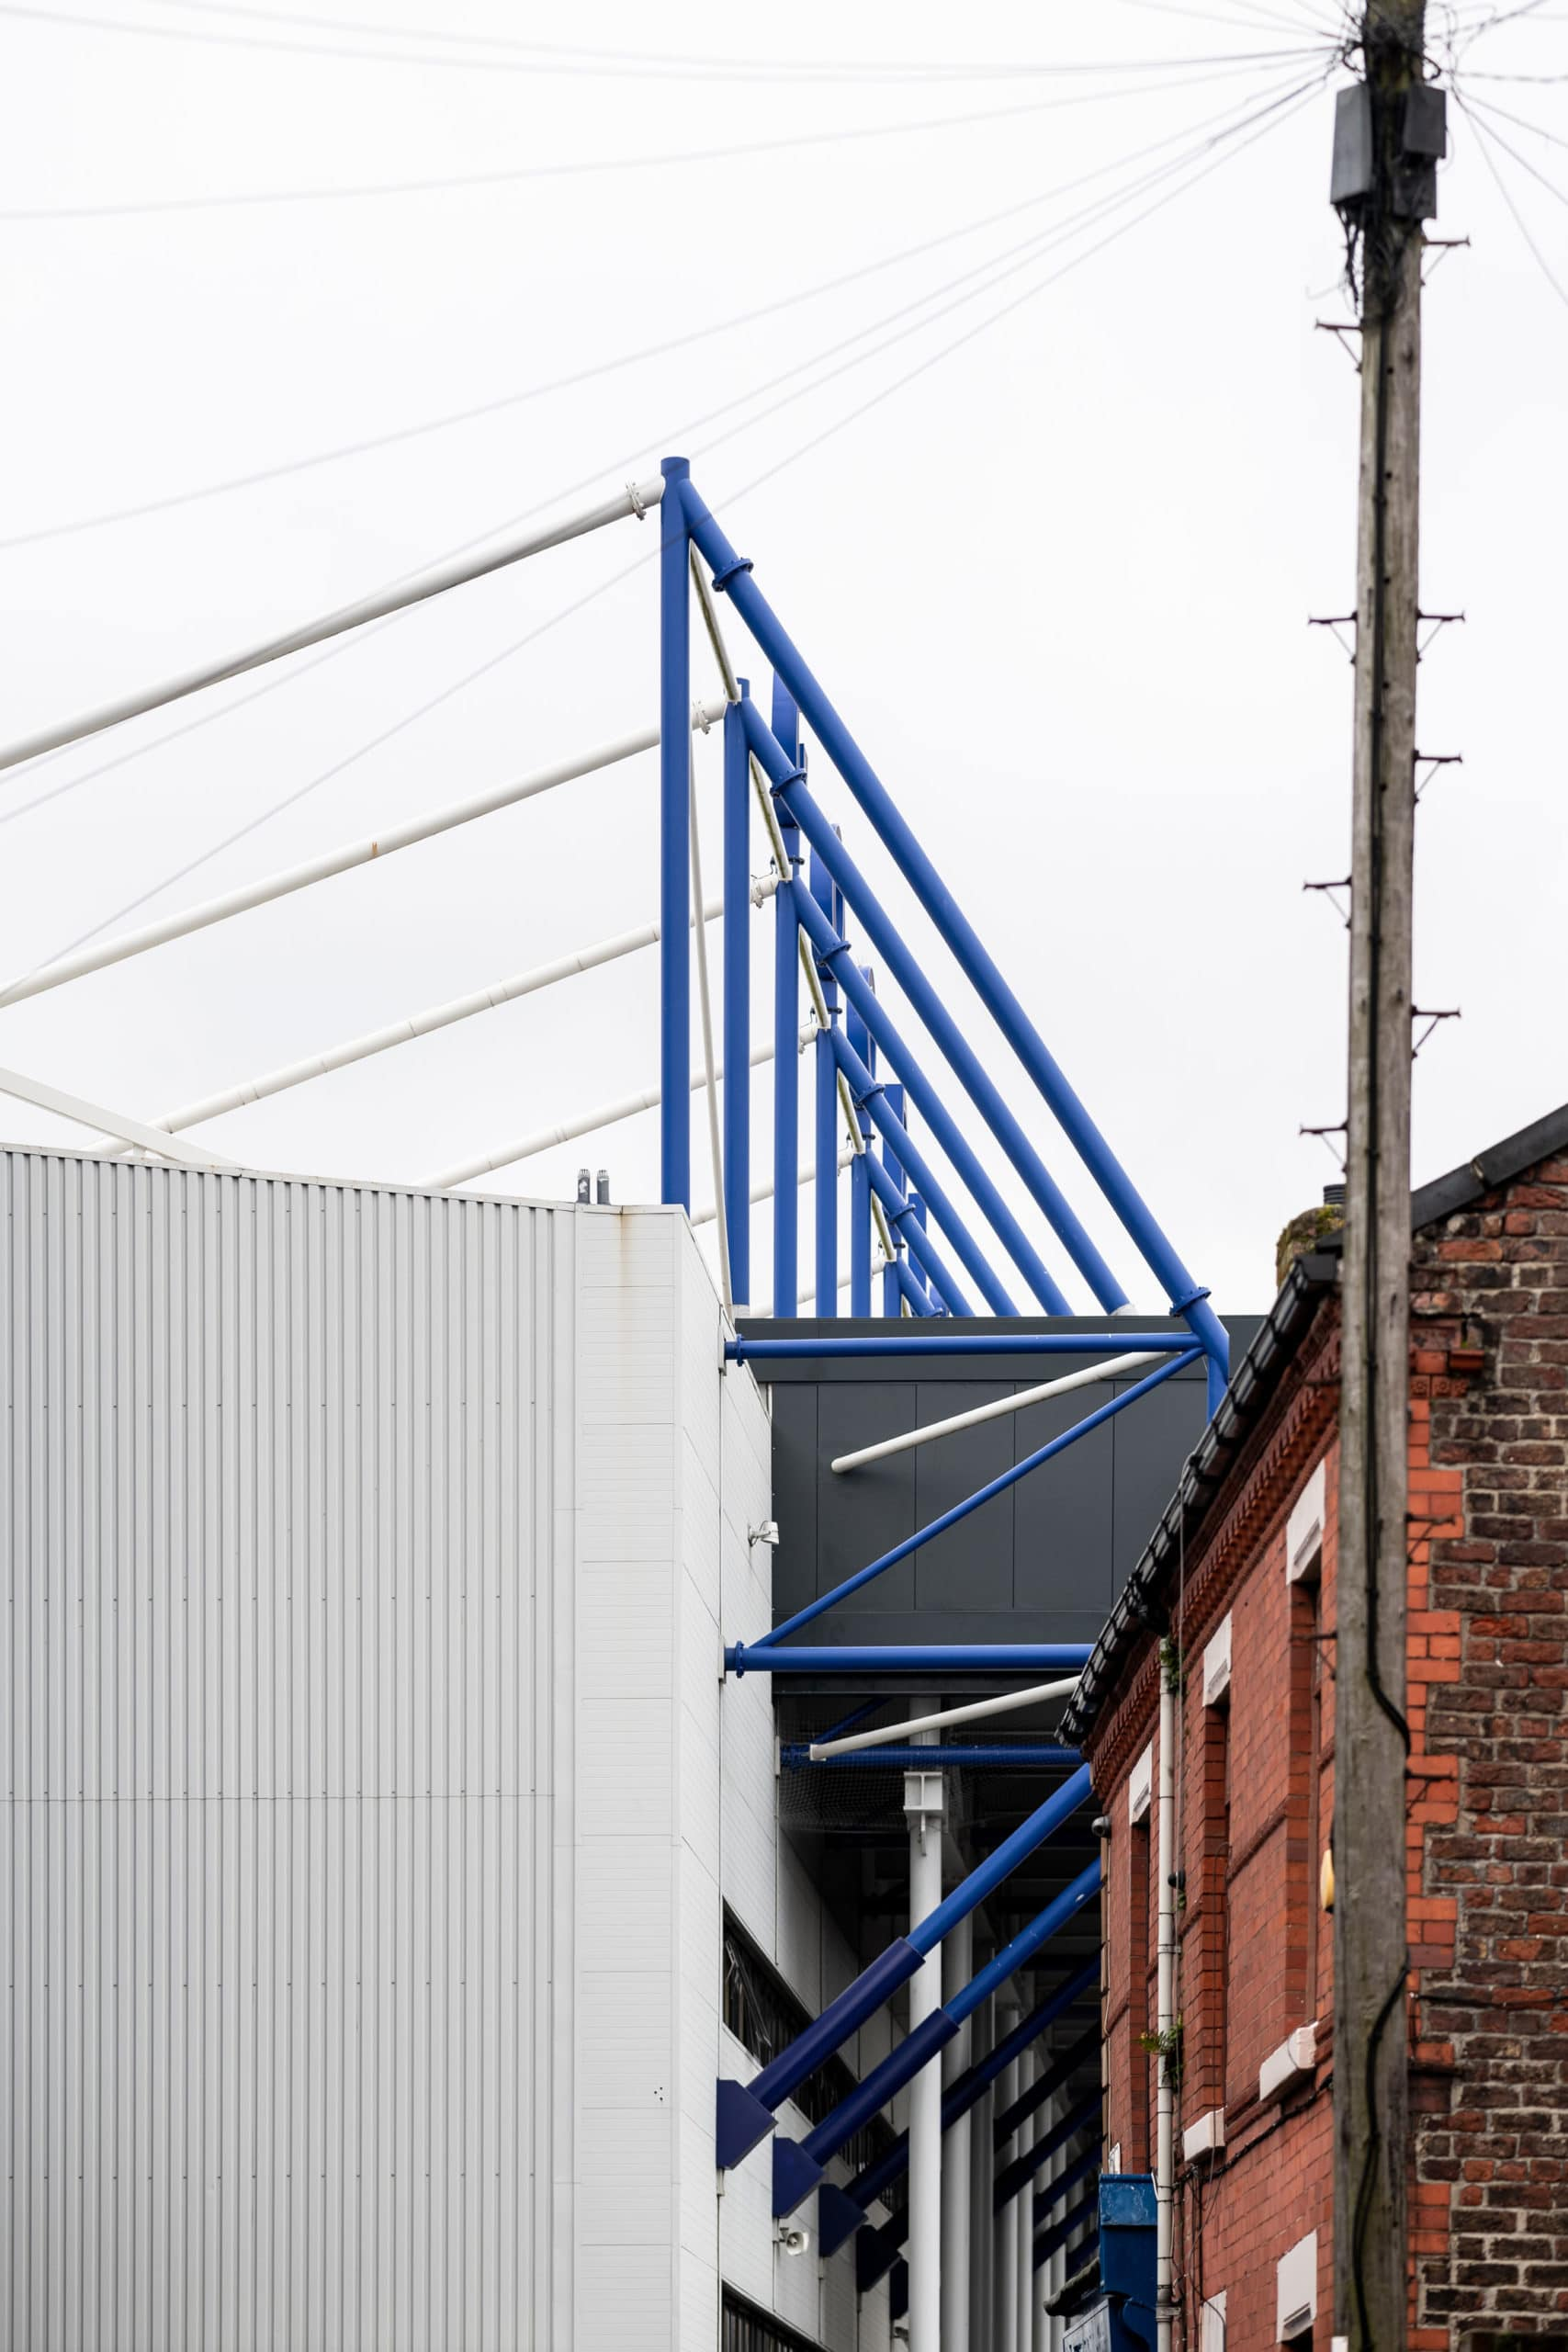 https://wooarchitects.com/wp-content/uploads/2019/11/Goodison-Park-photo-by-Tom-Bird-5-scaled.jpg